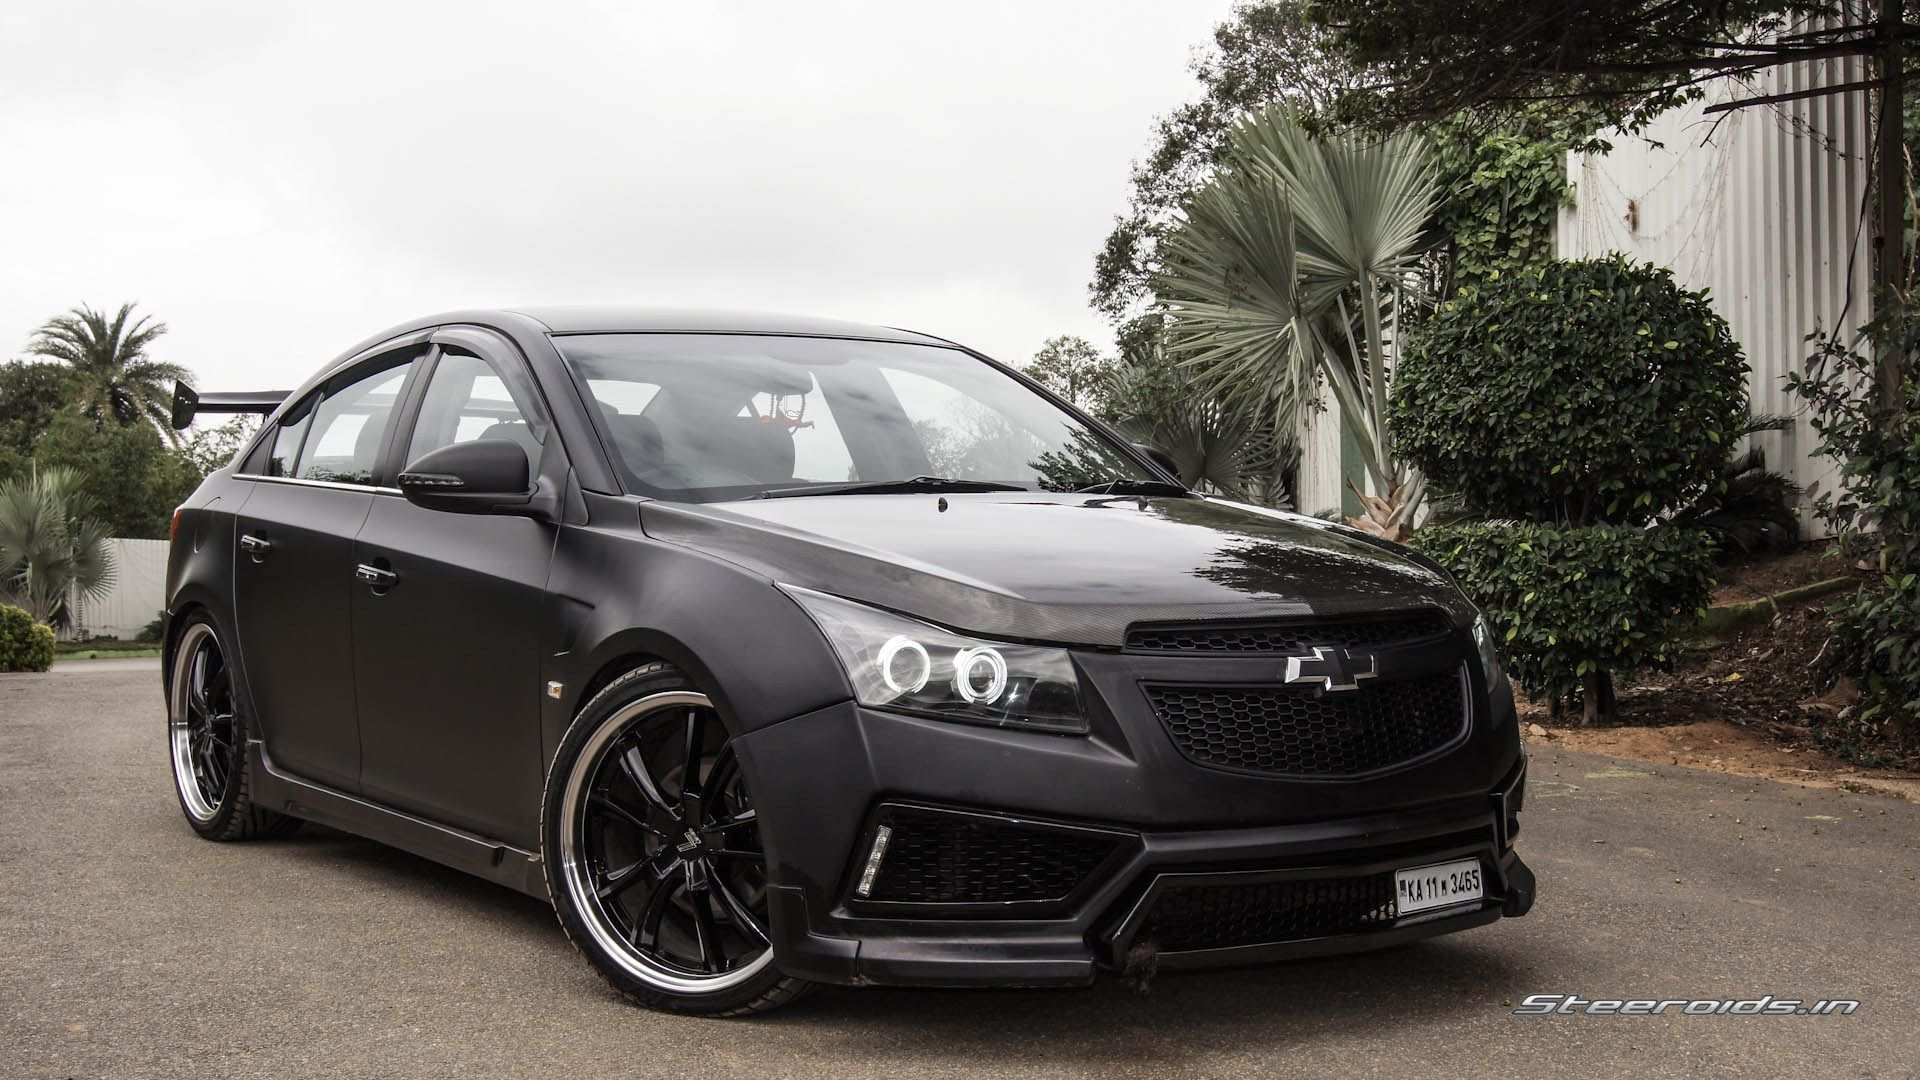 Modified Cars In India Chevrolet Cruze Cruze Chevy Cruze